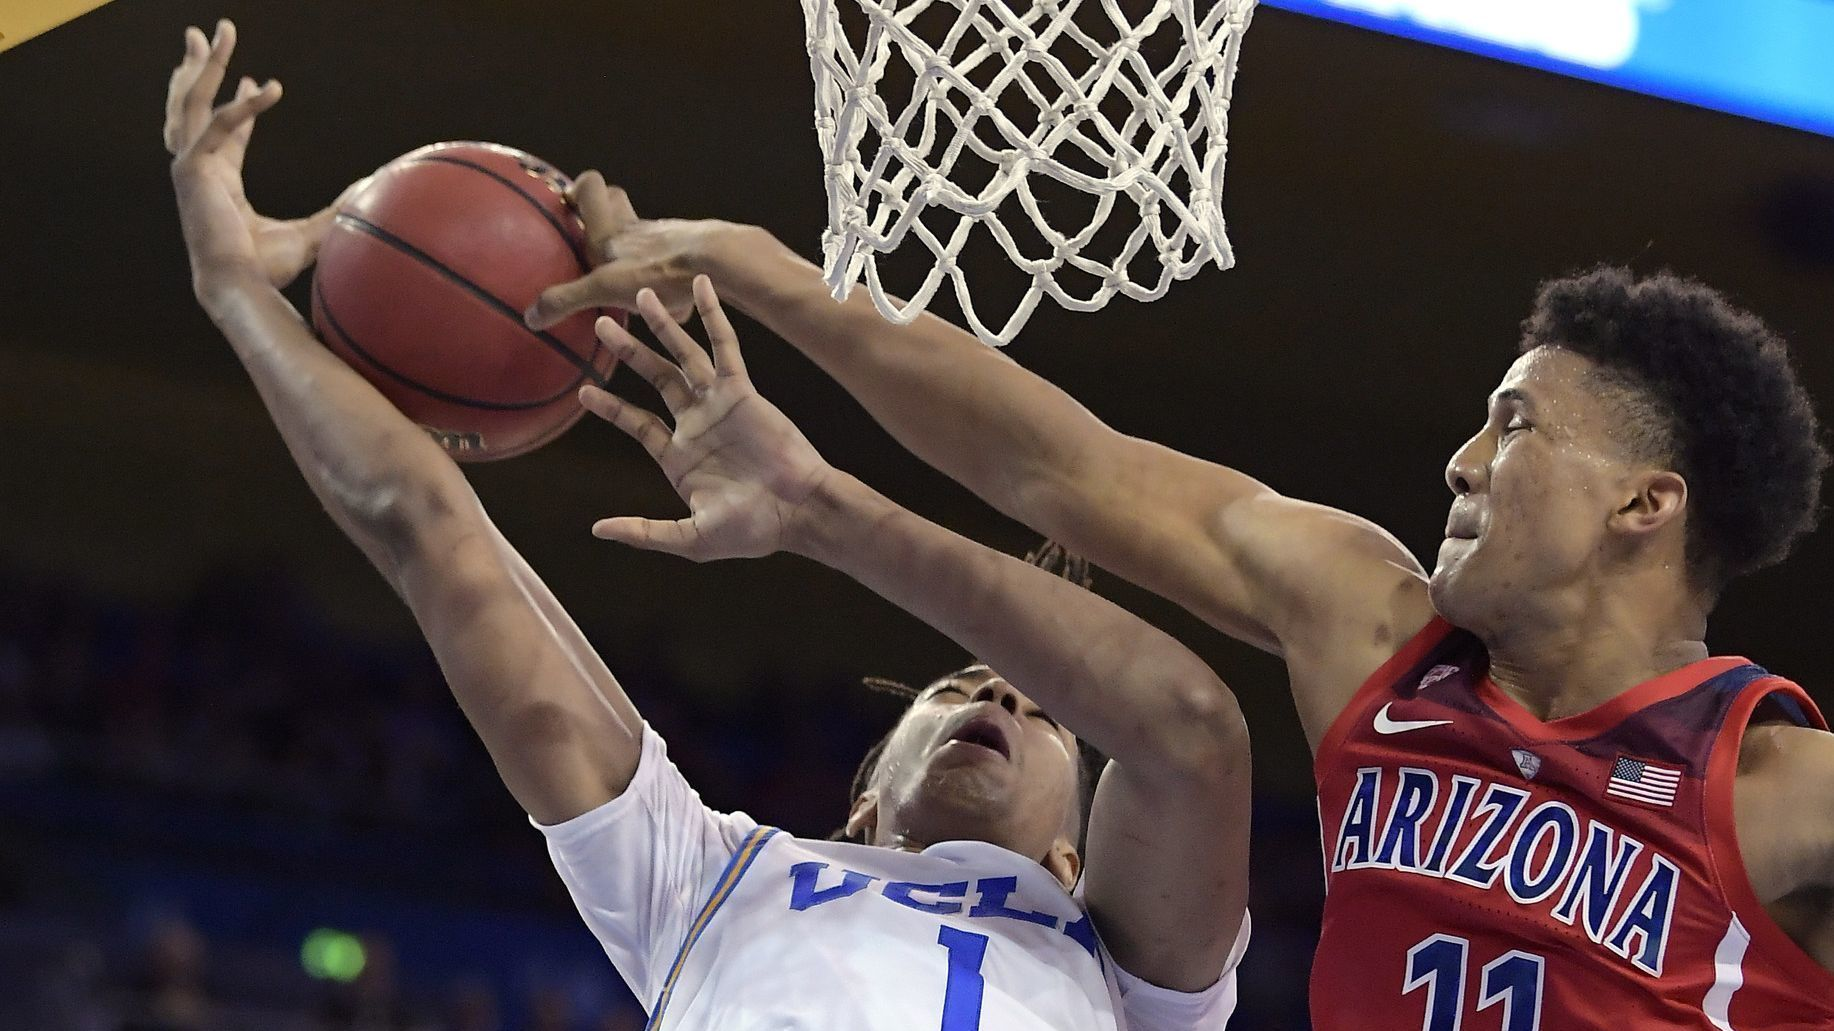 UCLA's basketball team has had trouble reaching for the stars this season